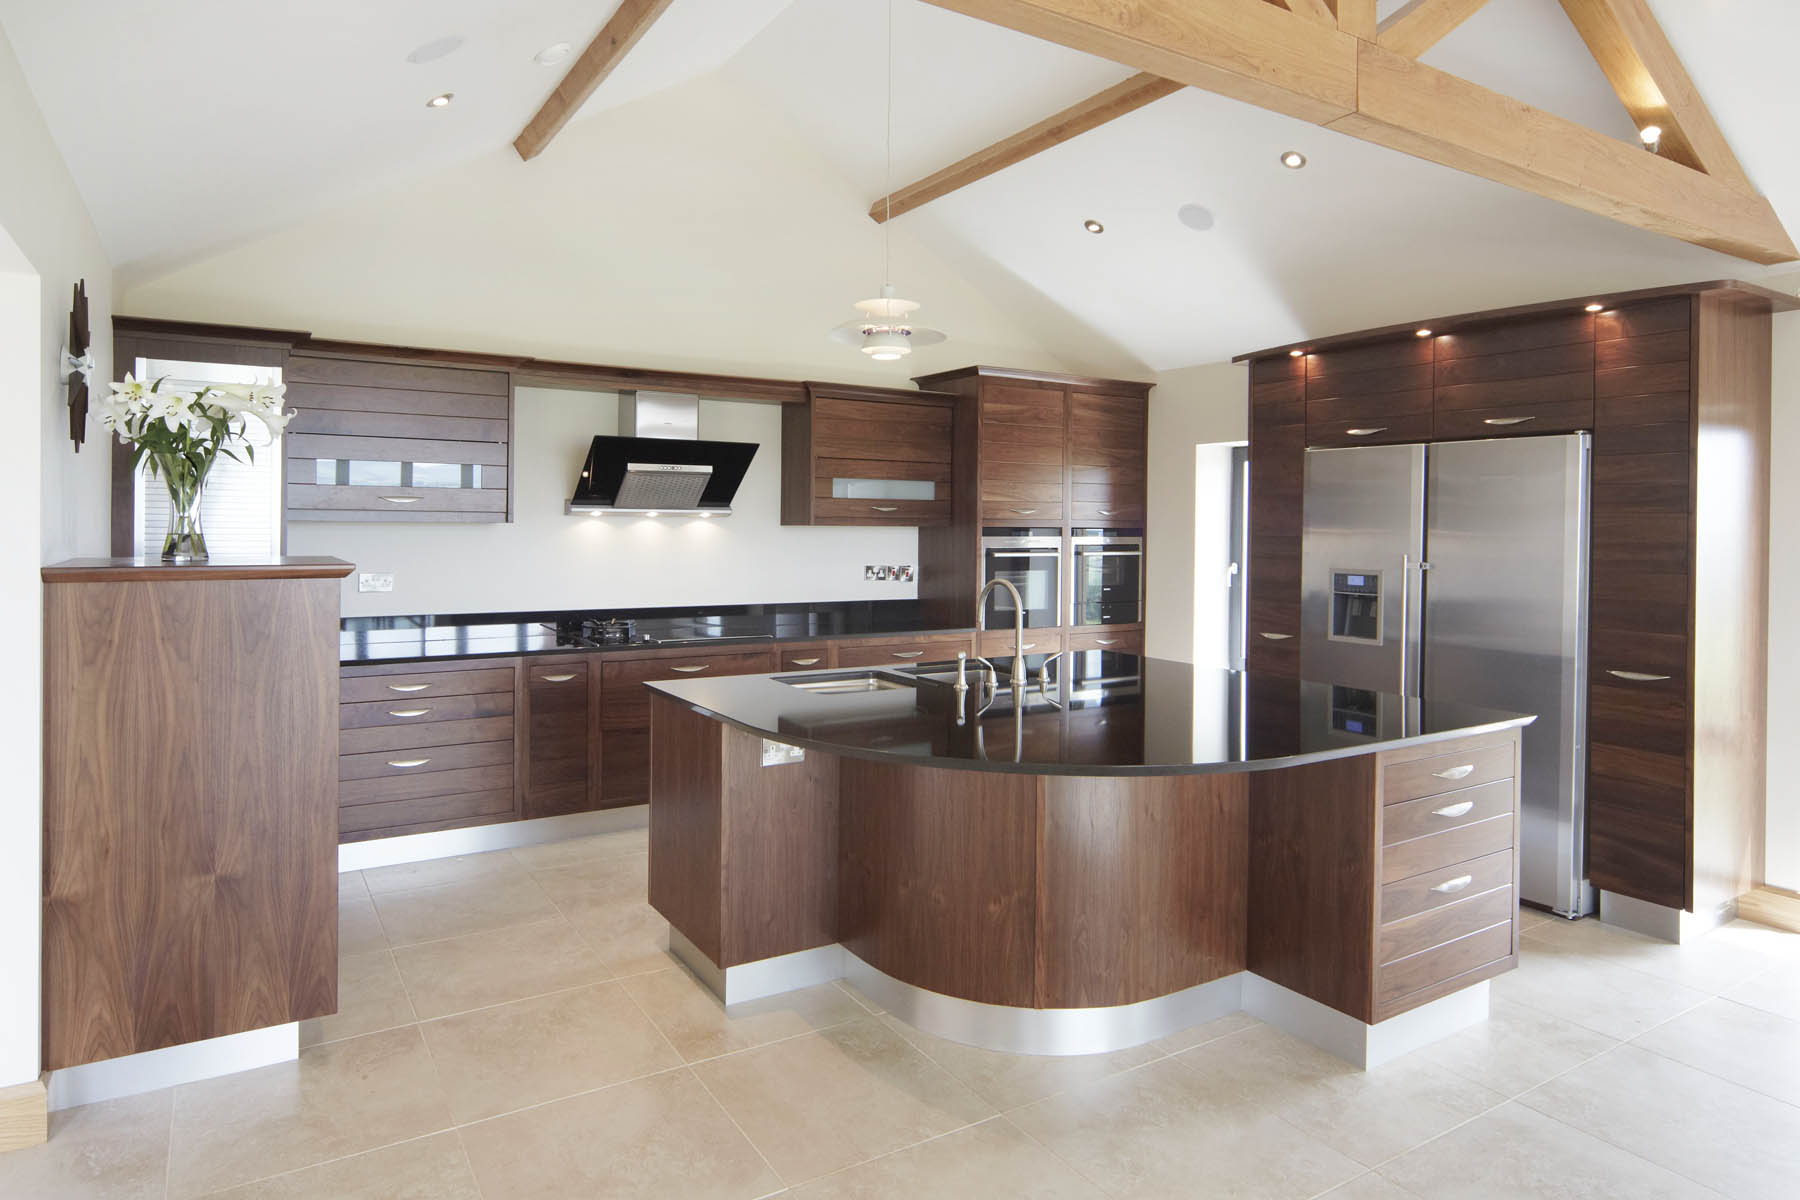 Kitchens california remodeling inc for Best kitchen remodel ideas